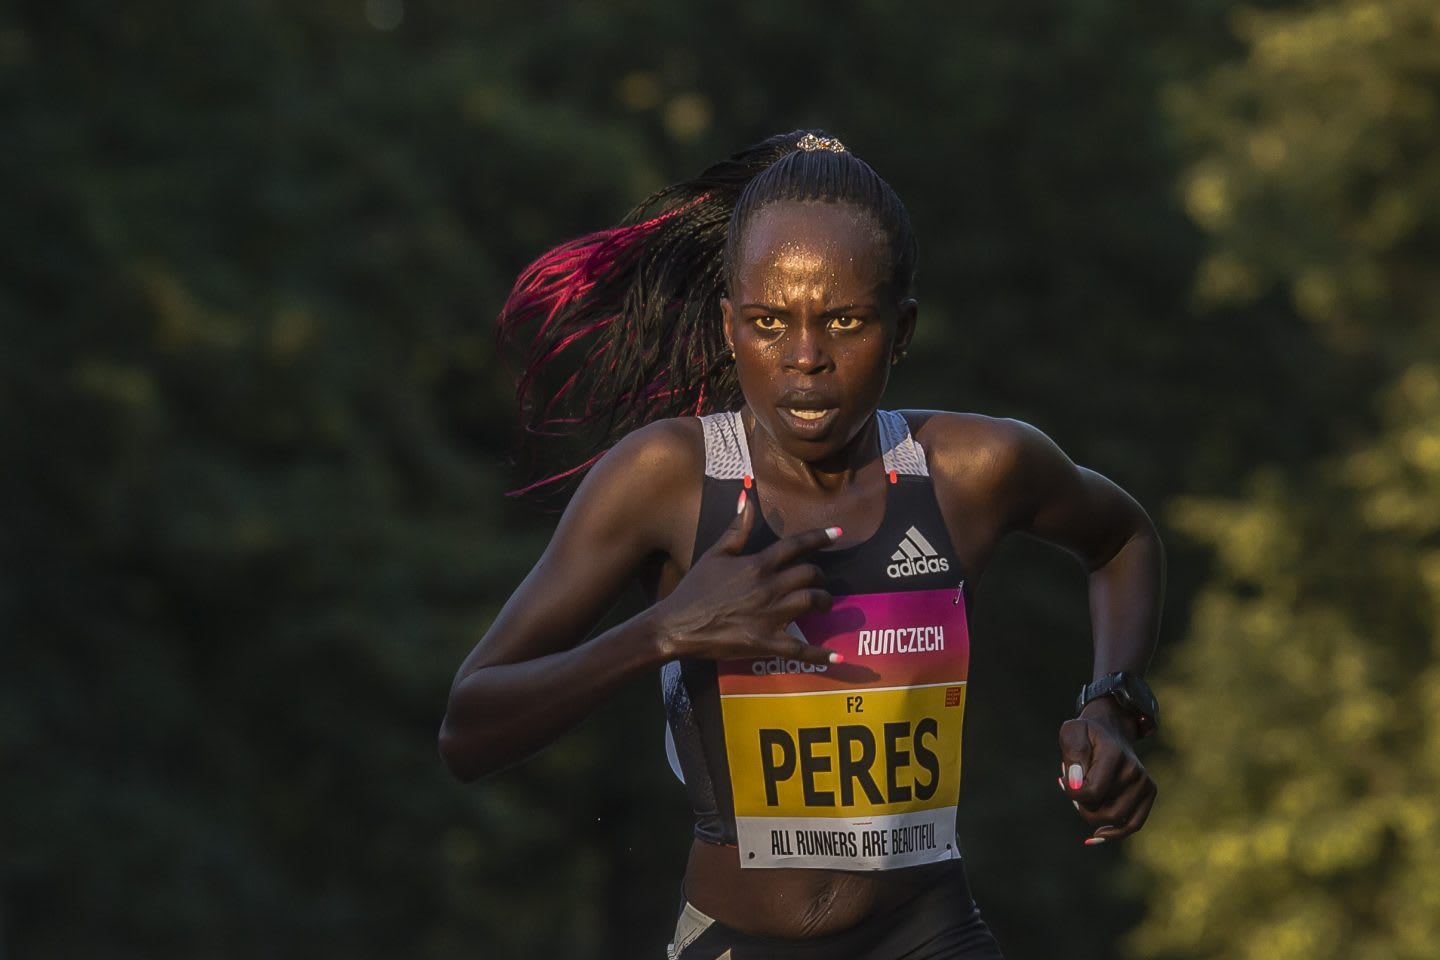 Kenyan long-distance runner Peres Jepchirchir running at the Prague half marathon in September, adidas, athlete, runner, sports